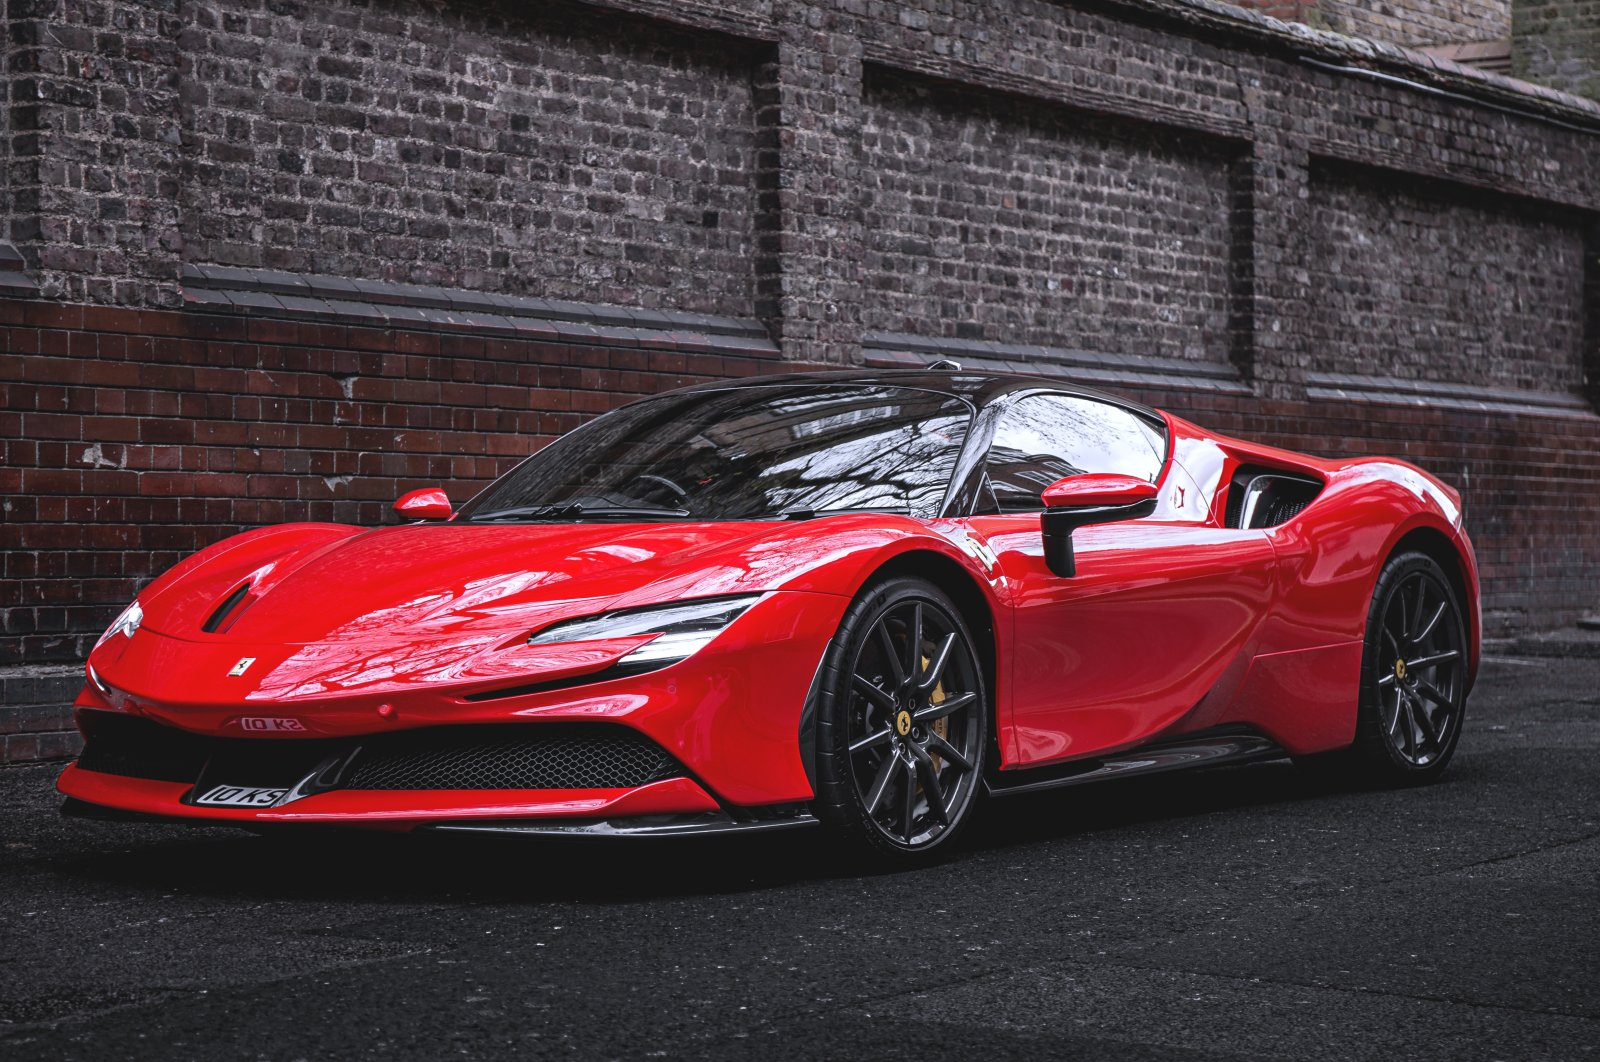 The Ferrari SF90 Stradale is parked in Mayfair, London, Britain, April 14, 2021. (Getty Images)